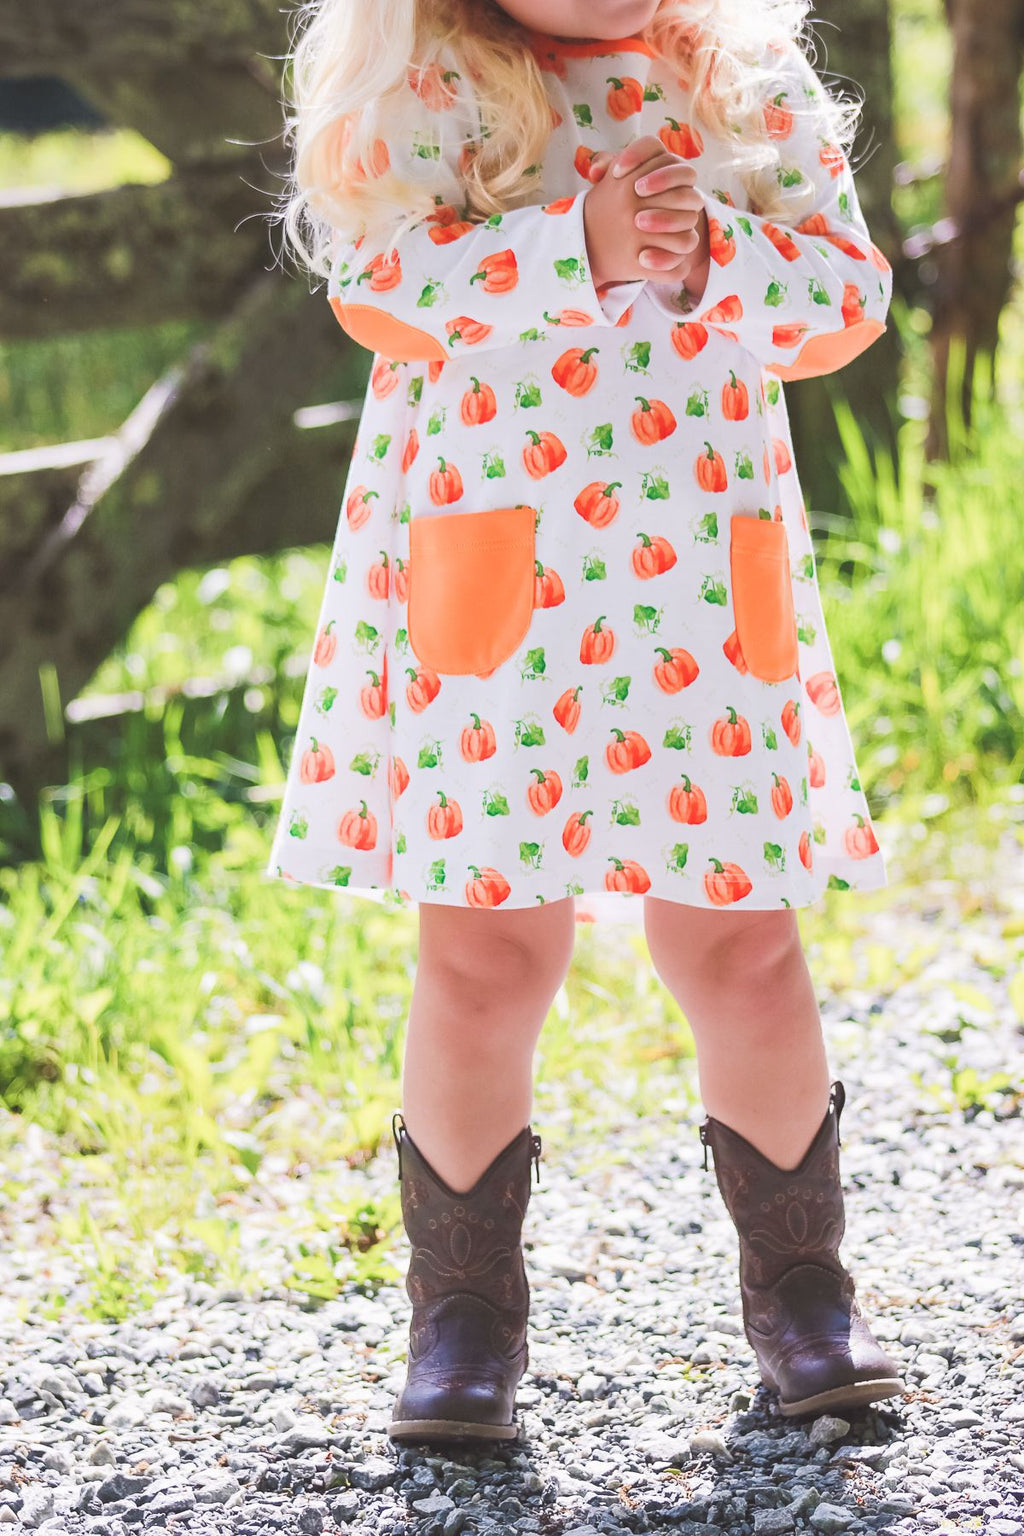 PRE-ORDER The Proper Peony Parker Pumpkin Dress